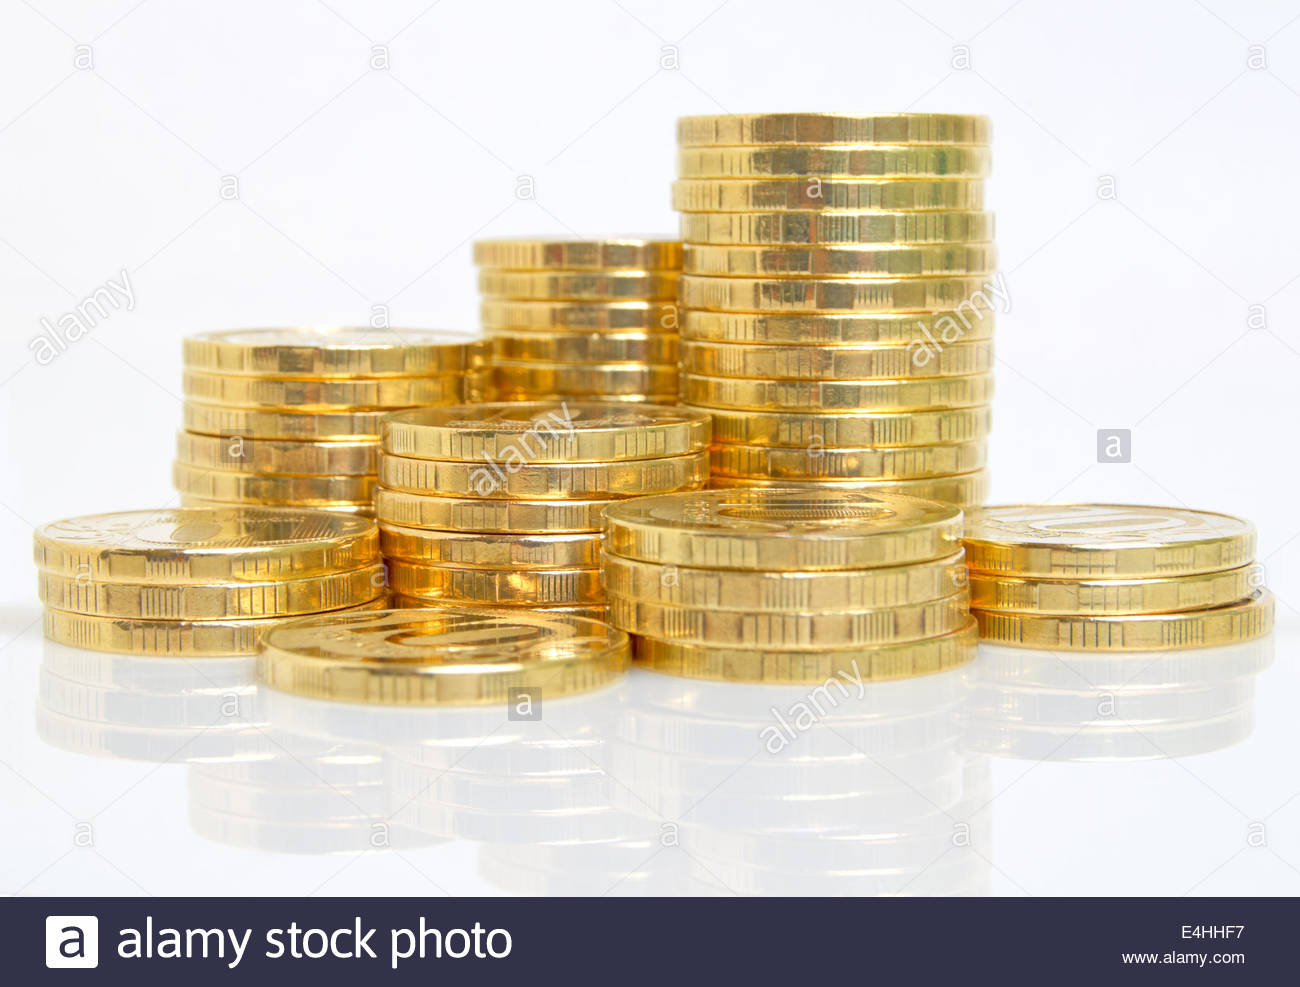 Stacks of coins on a light surface. - Stock Image